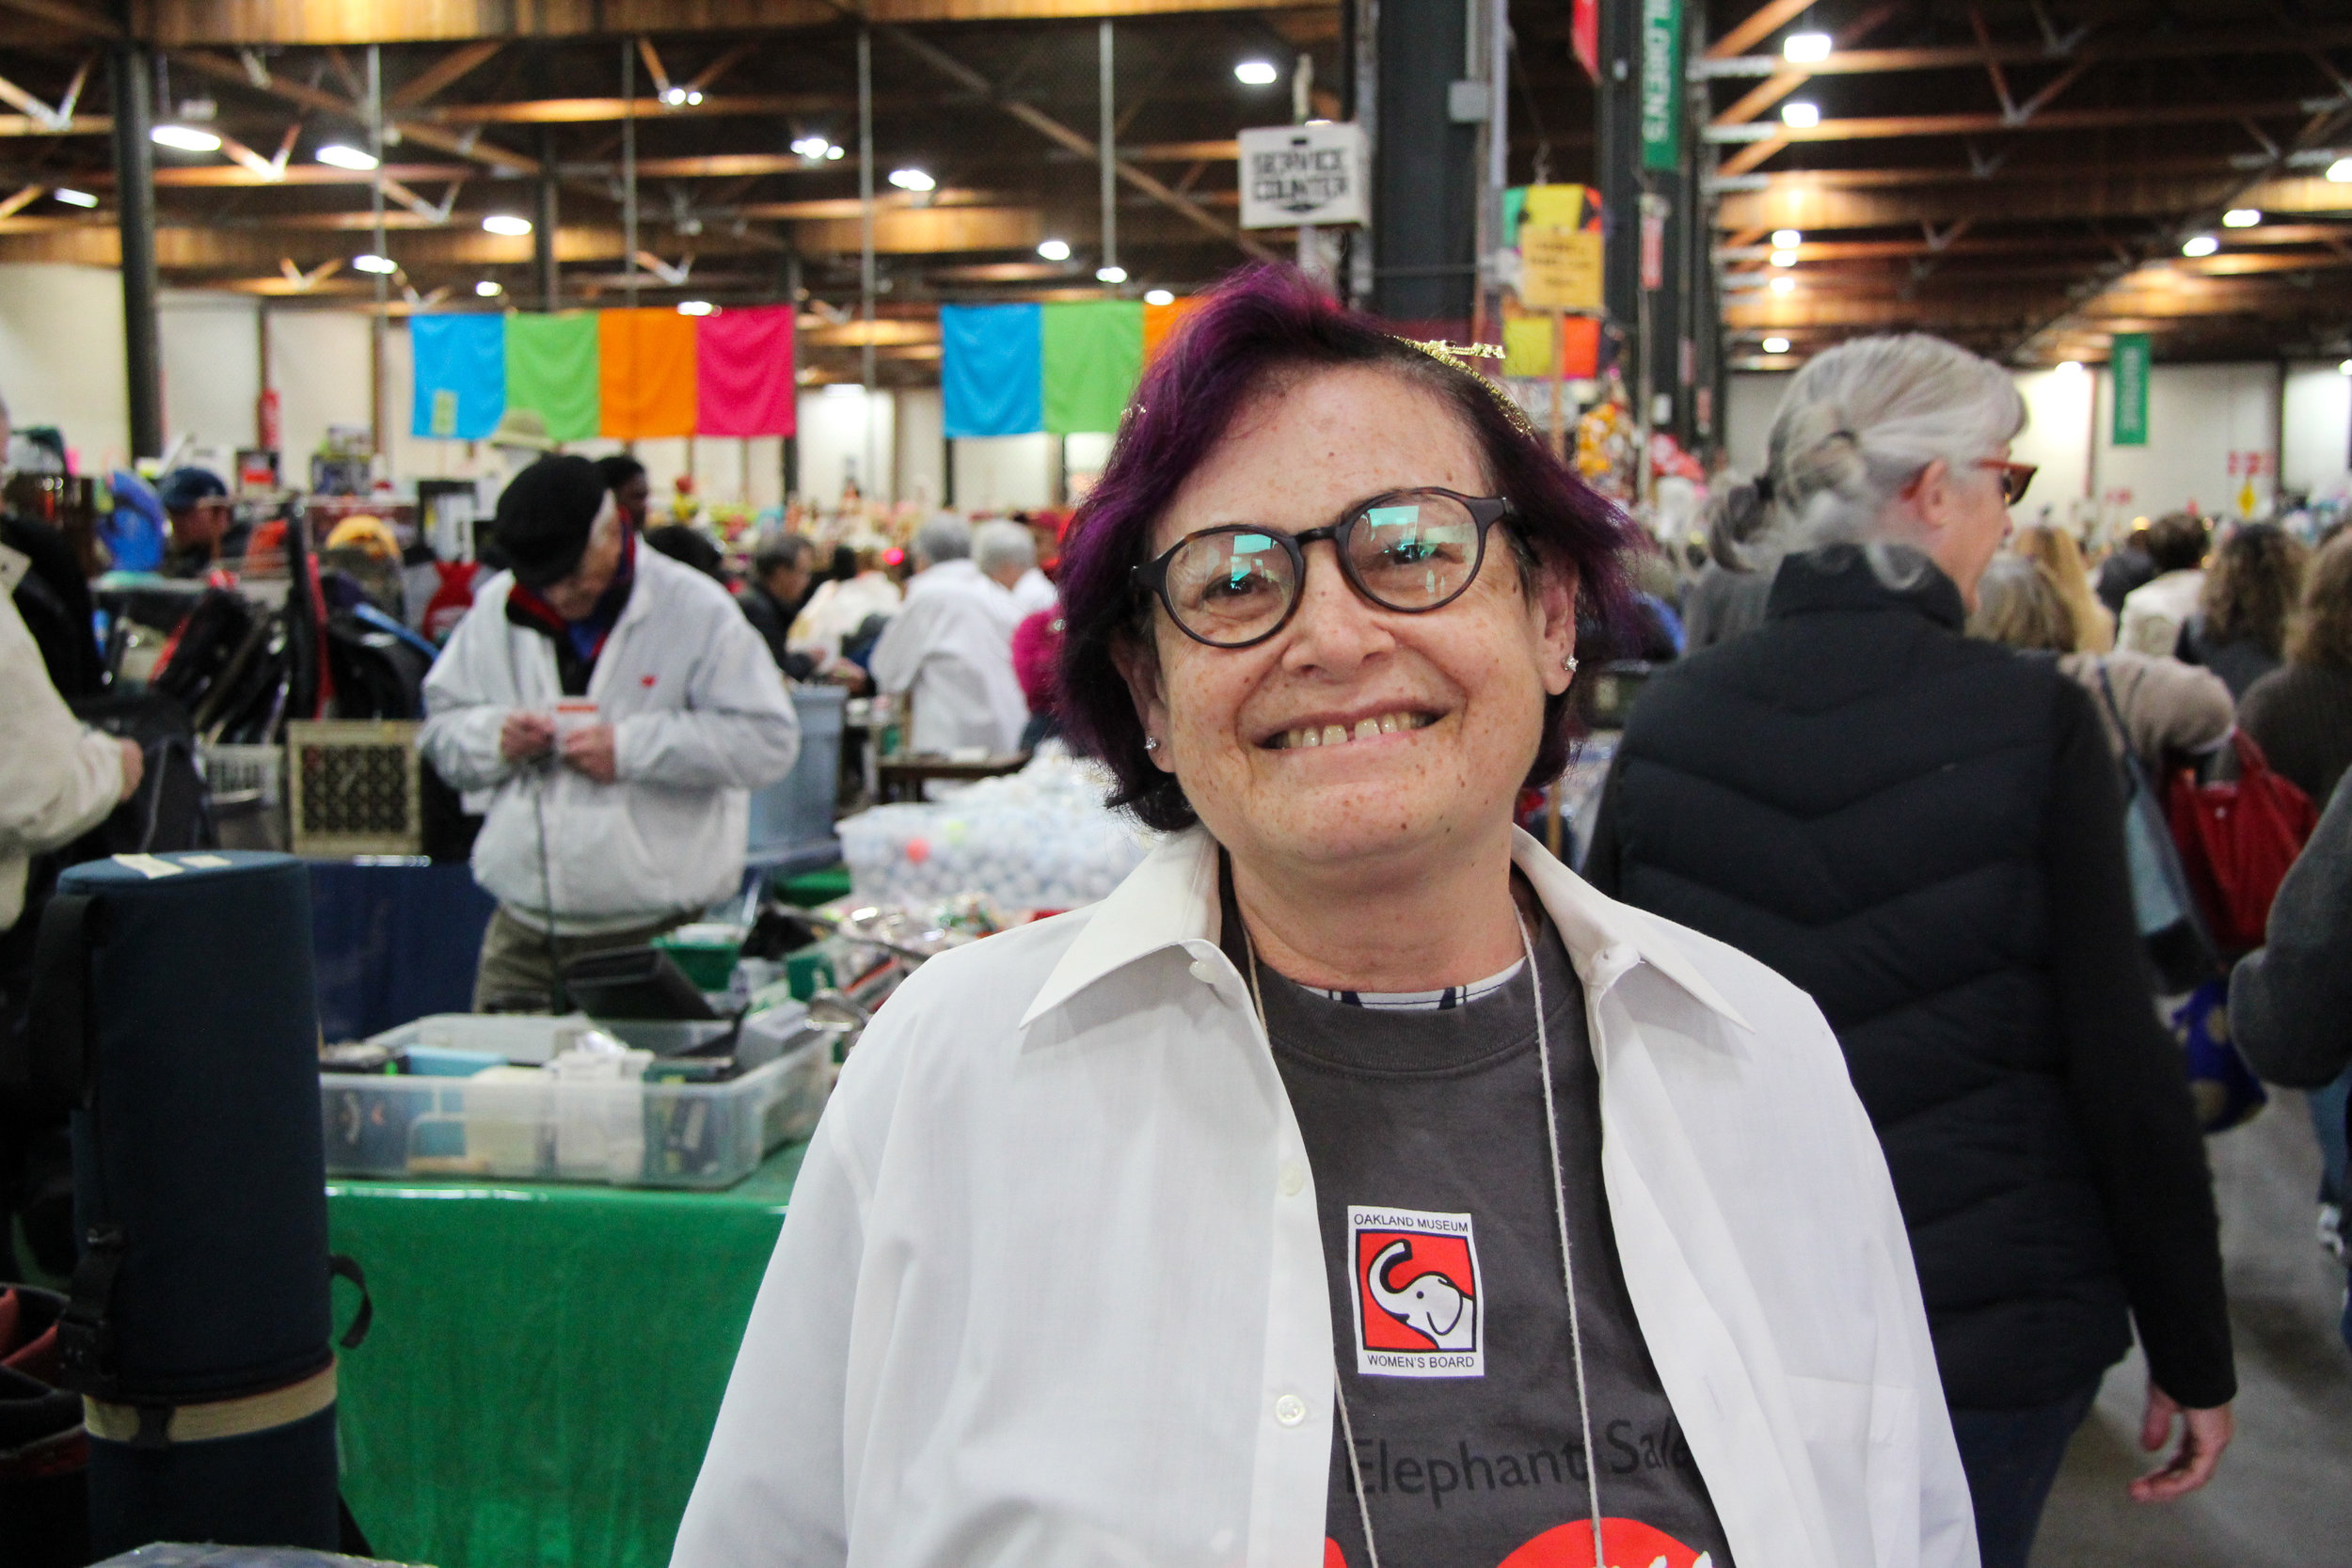 Joanne has been volunteering with the White Elephant Sale since 2015. She works in Bric-a-Brac.